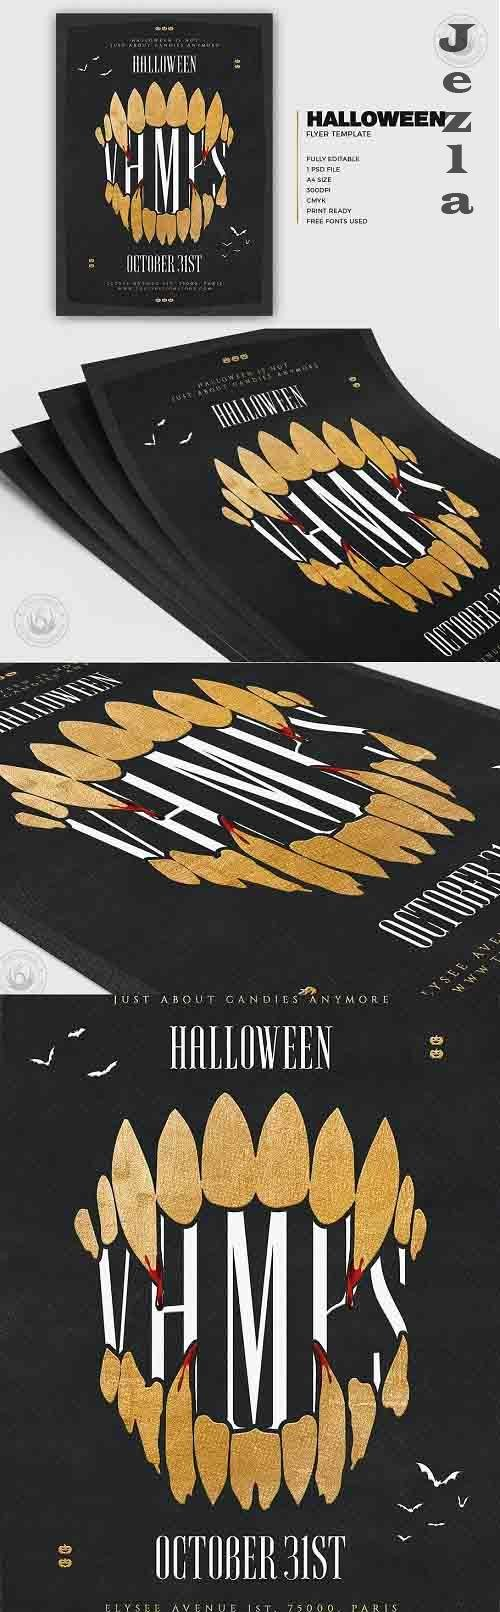 Halloween Flyer Template V28 - 5274284